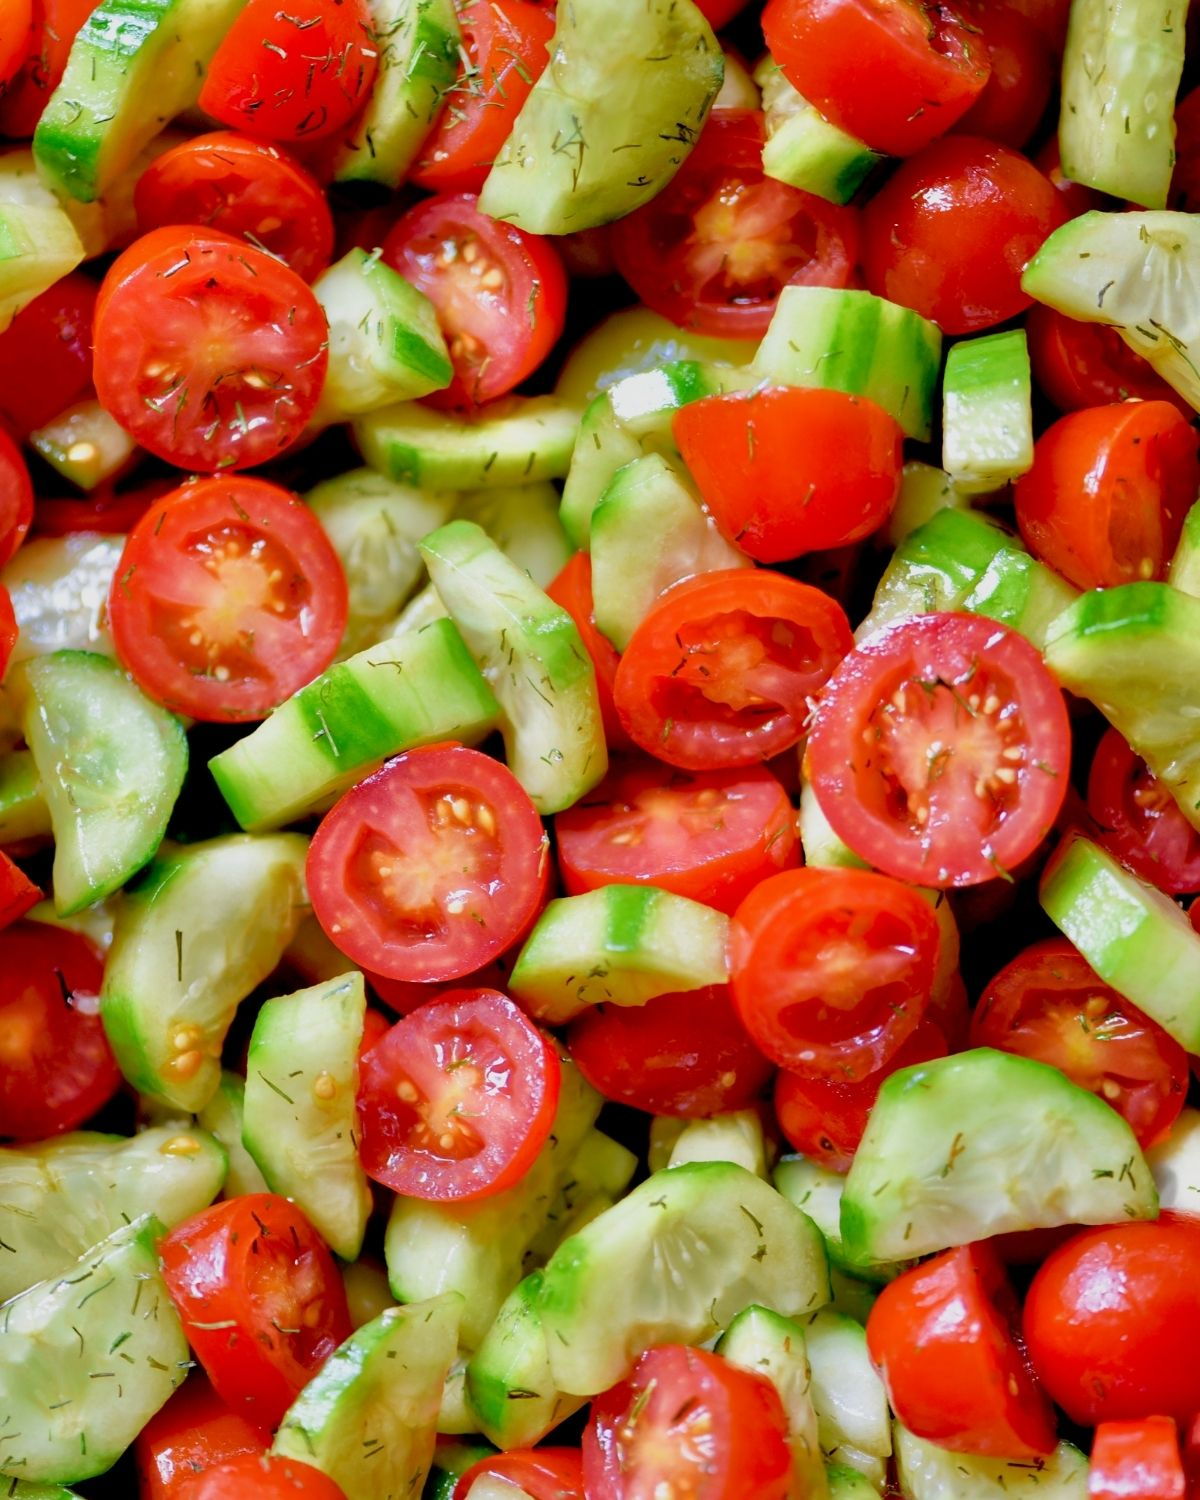 close up shot of sliced cucumbers and tomatoes coated in balsamic vinegar and garnished with fresh dill